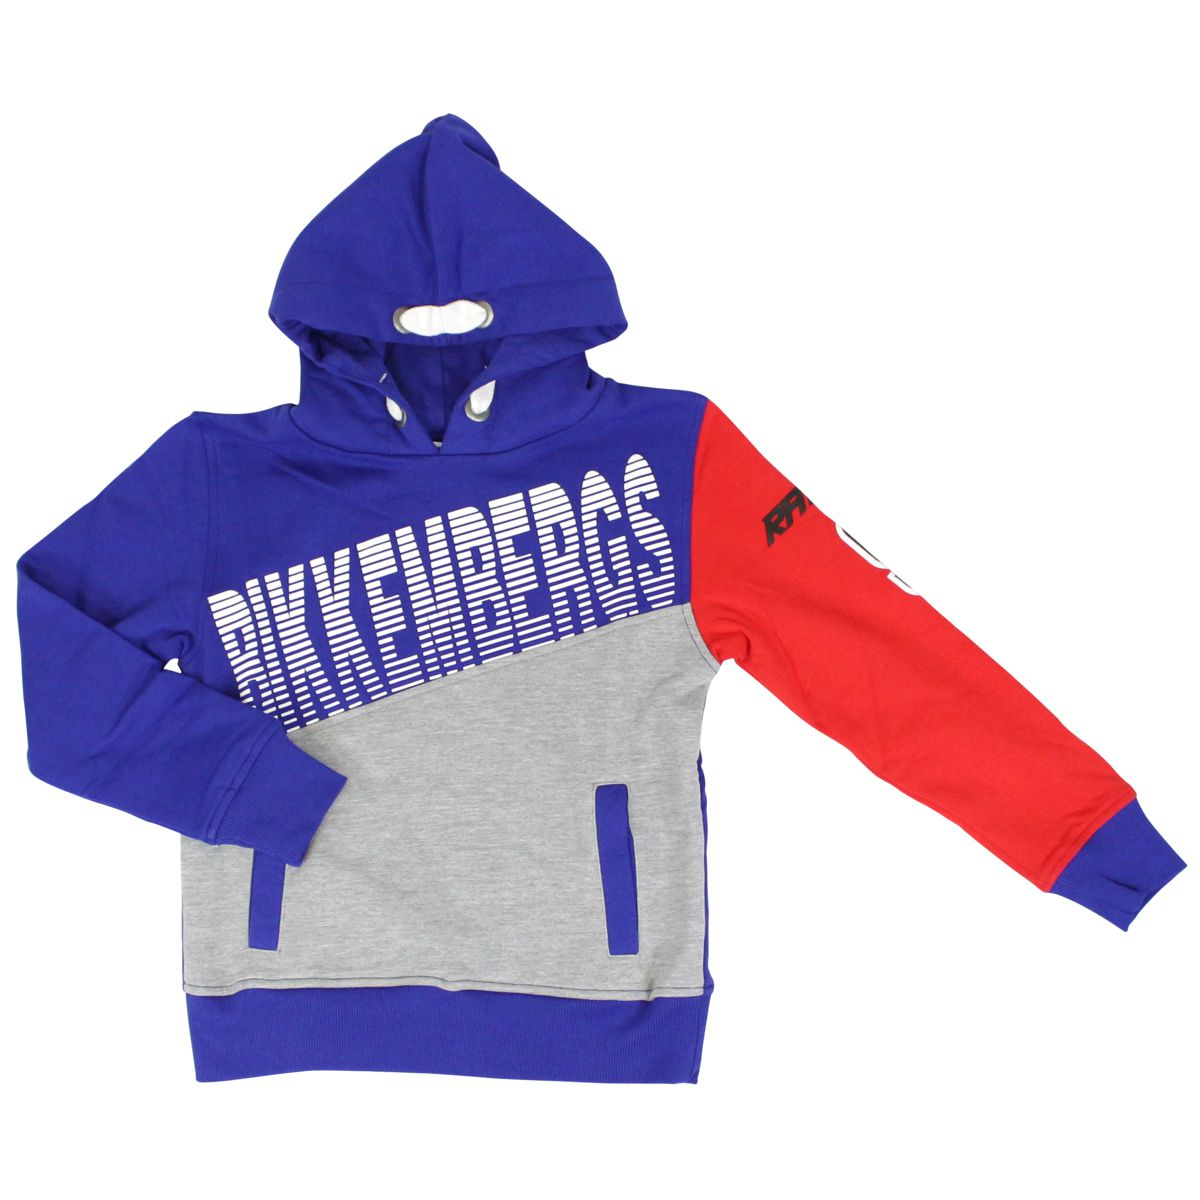 Cotton sweatshirt with hood and logo print Bluette Bikkembergs